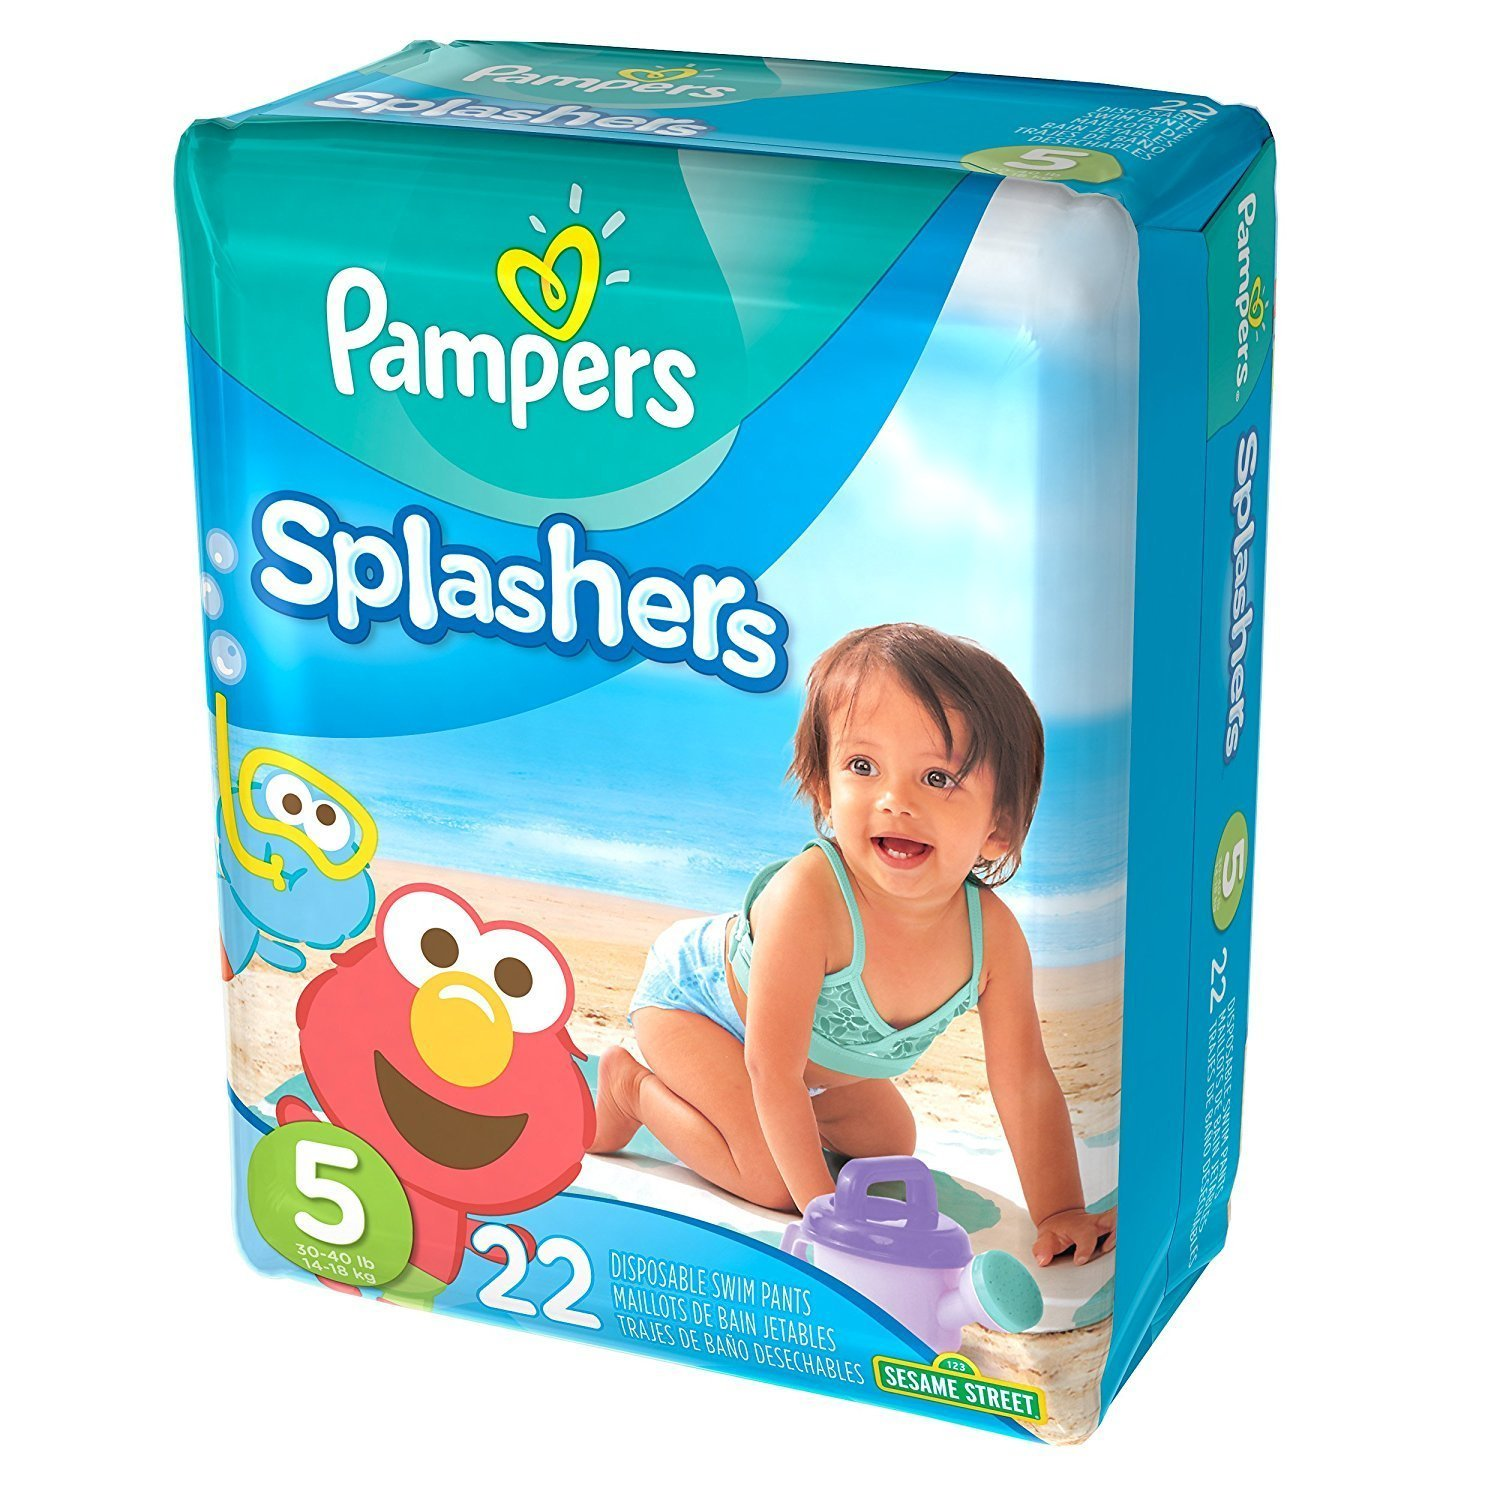 Amazon.com: Pampers Splashers Swim Diaper Sesame Street - Size 5 - 22 ct (Pack of 2, Total of 44 ct): Health & Personal Care